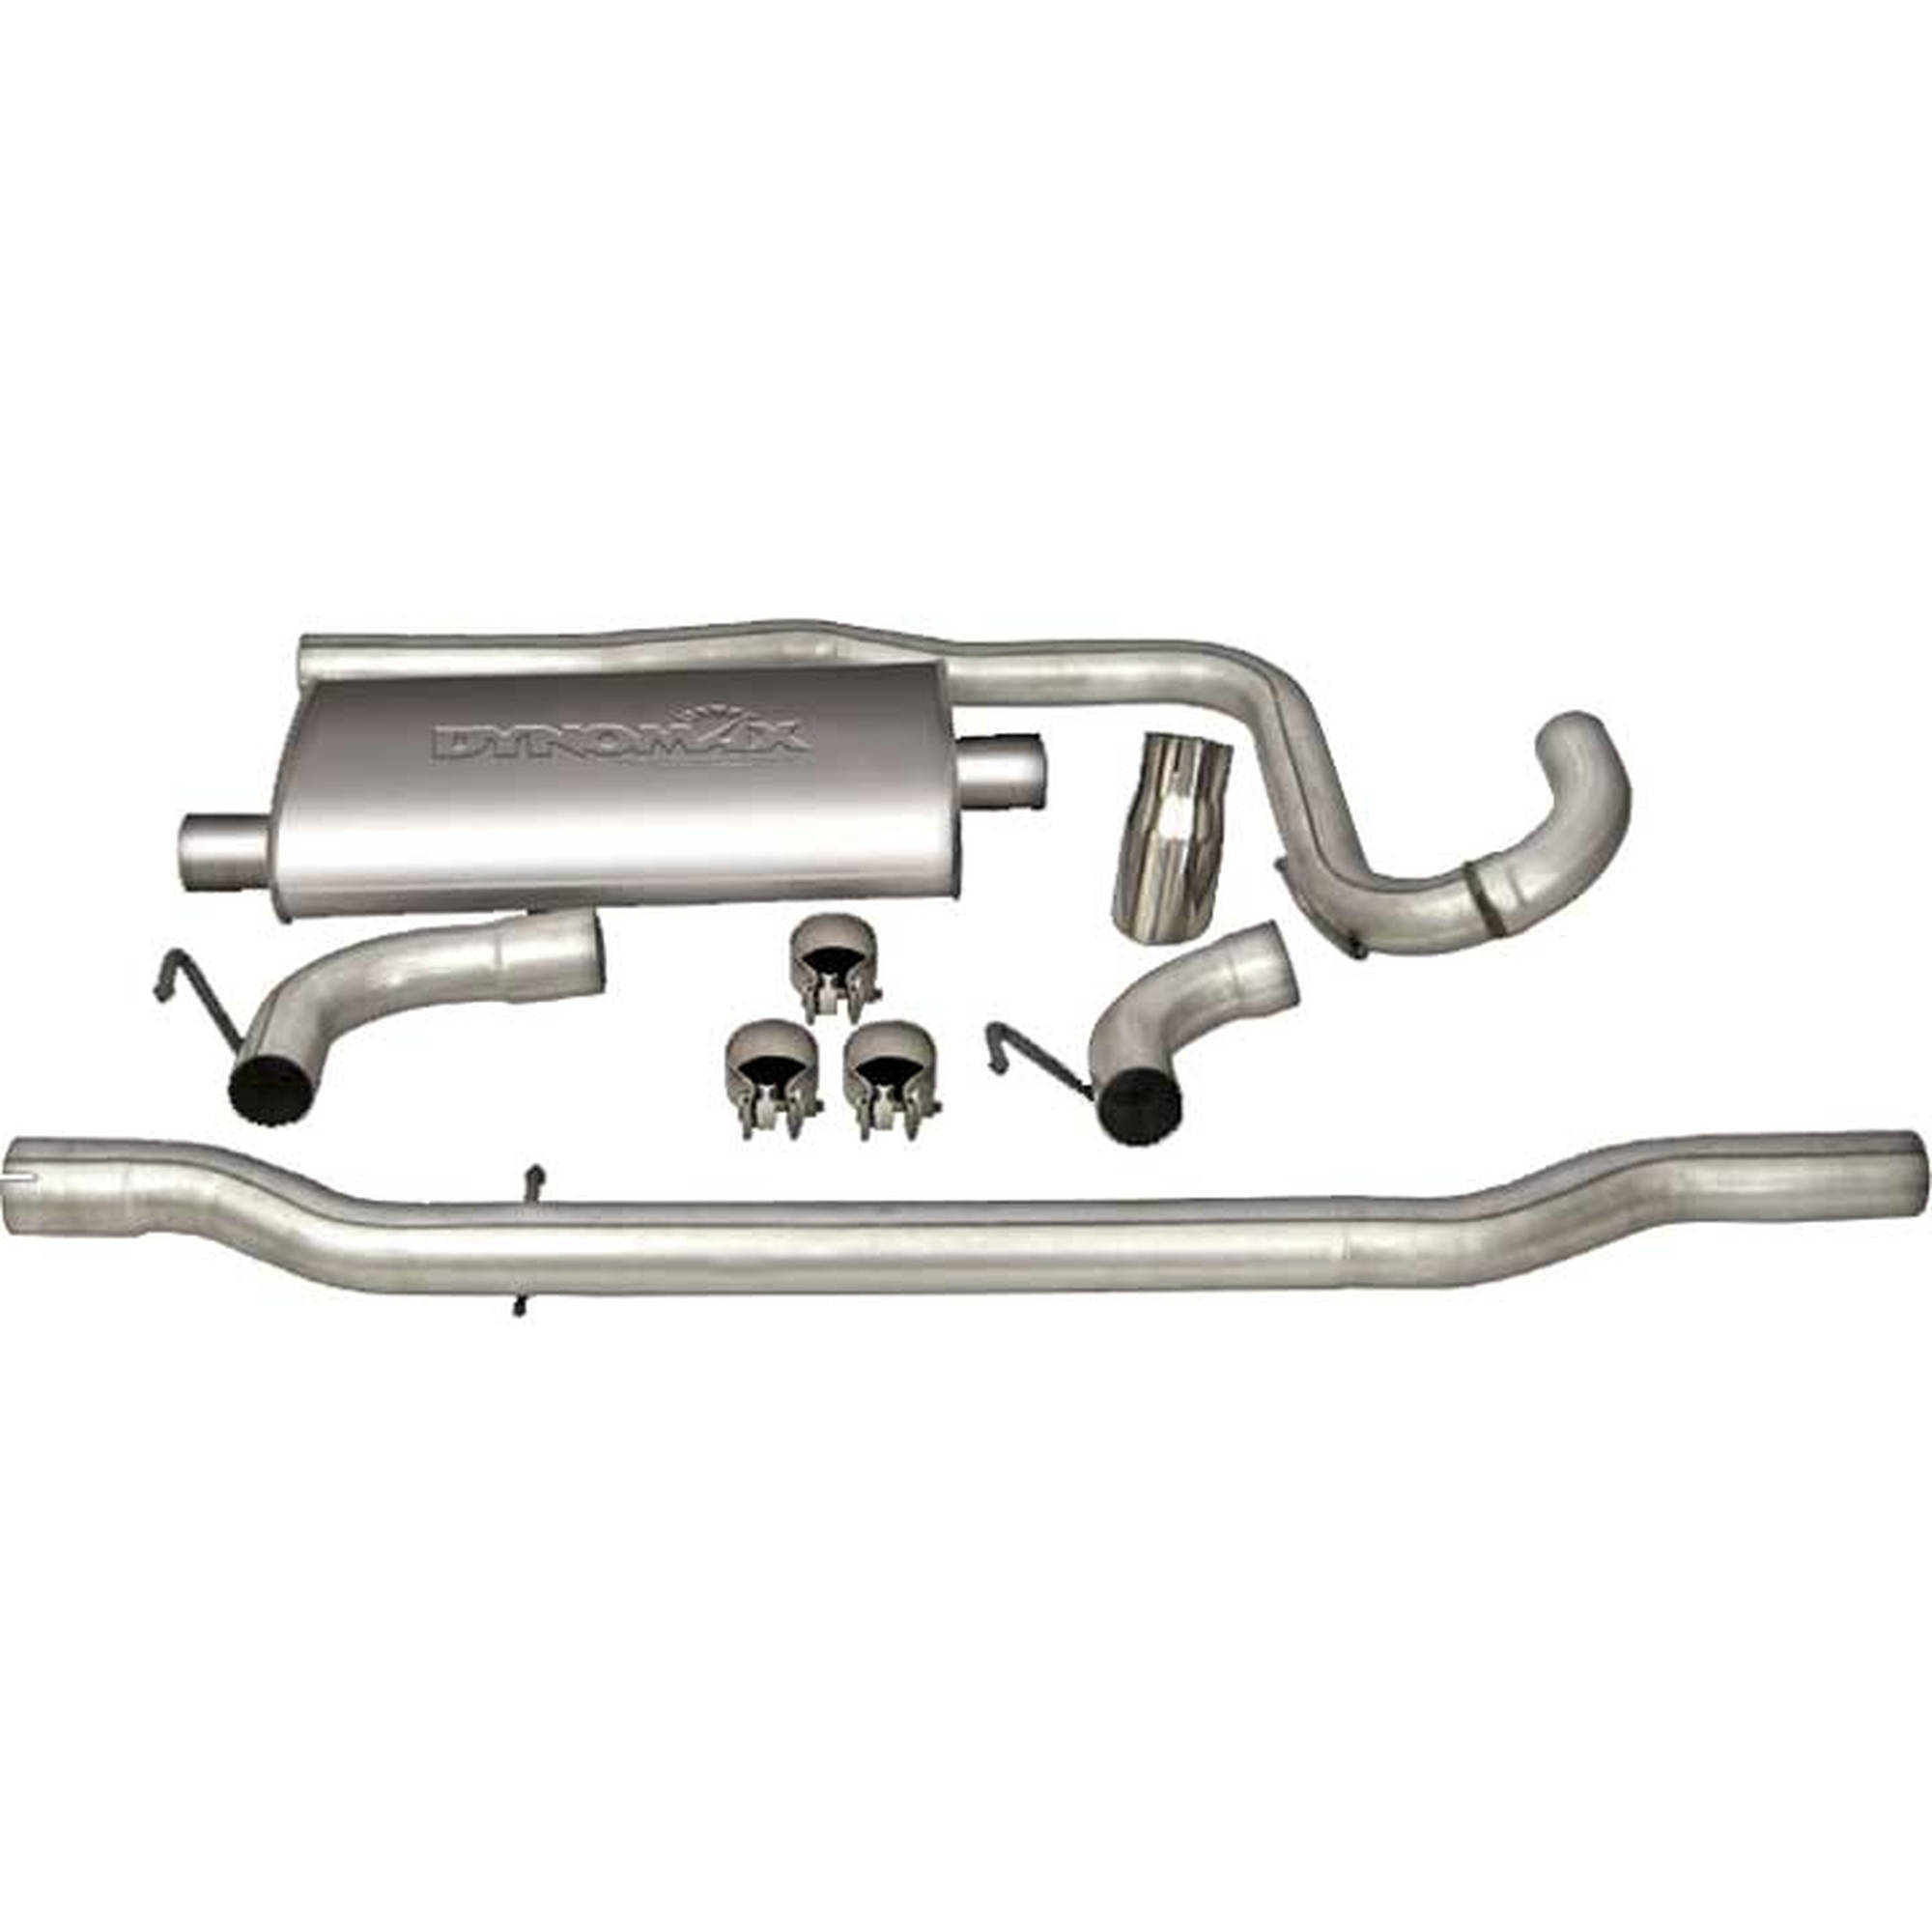 hight resolution of 07 09 caliber r t 07 09 dodge caliber rt jeep compass jeep patriot ss exhaust system replacement auto part easy to install walmart com